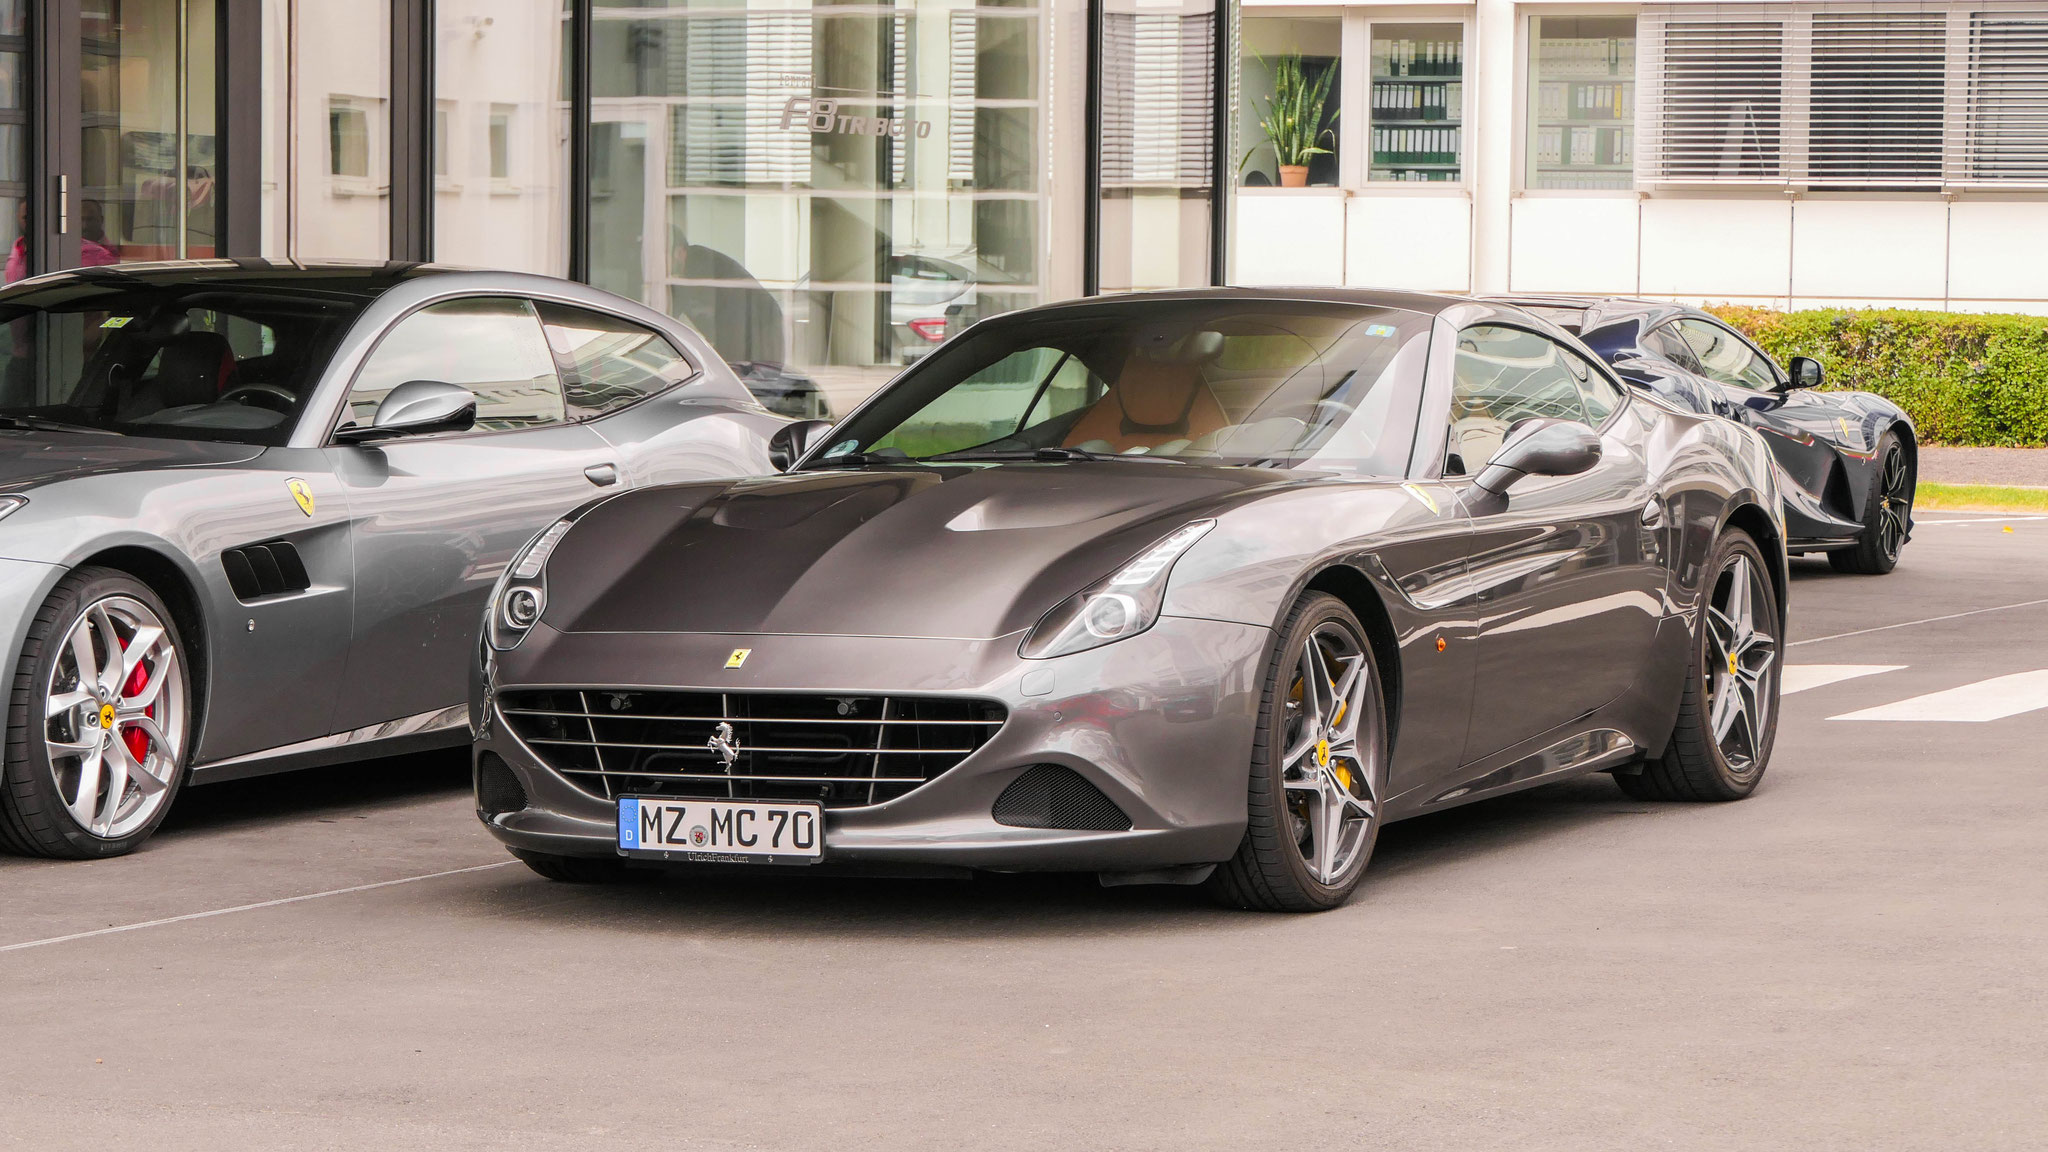 Ferrari California T - MZ-MC-70